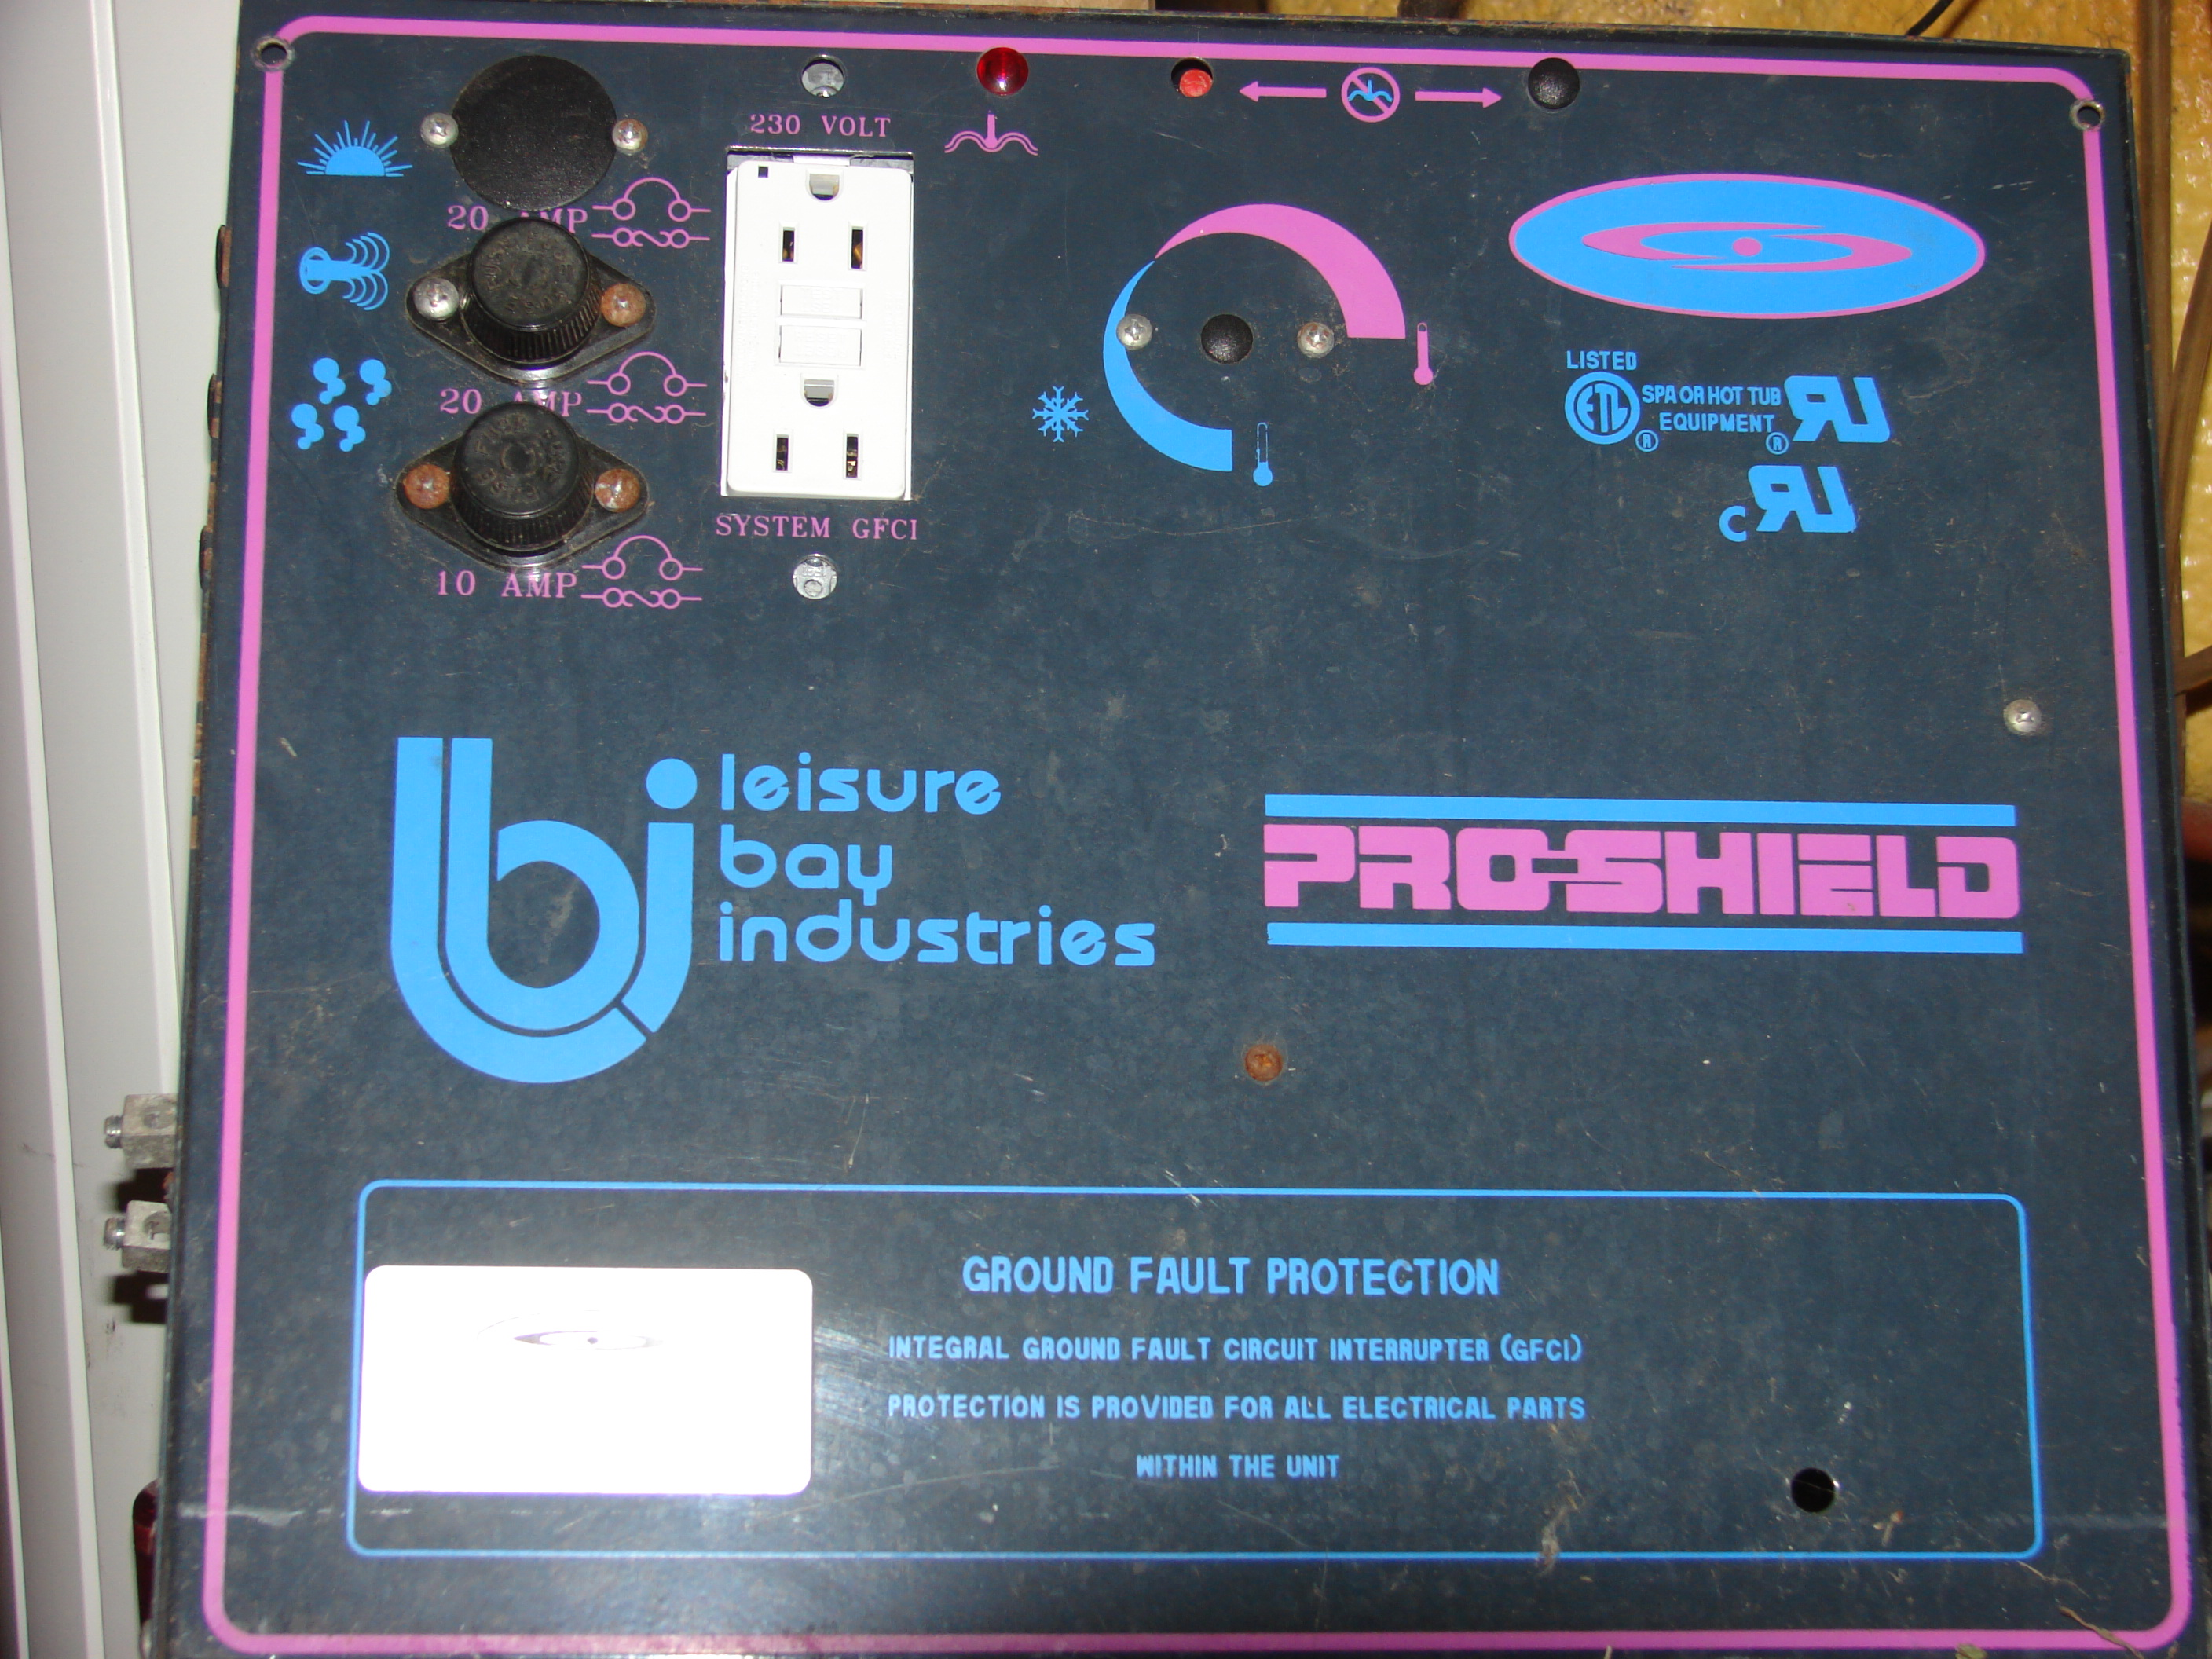 I Have A Leisure Bay Pro Shield Hot Tub Model G1010clssog Ca And Spa Wiring Diagram Panel Controll Face